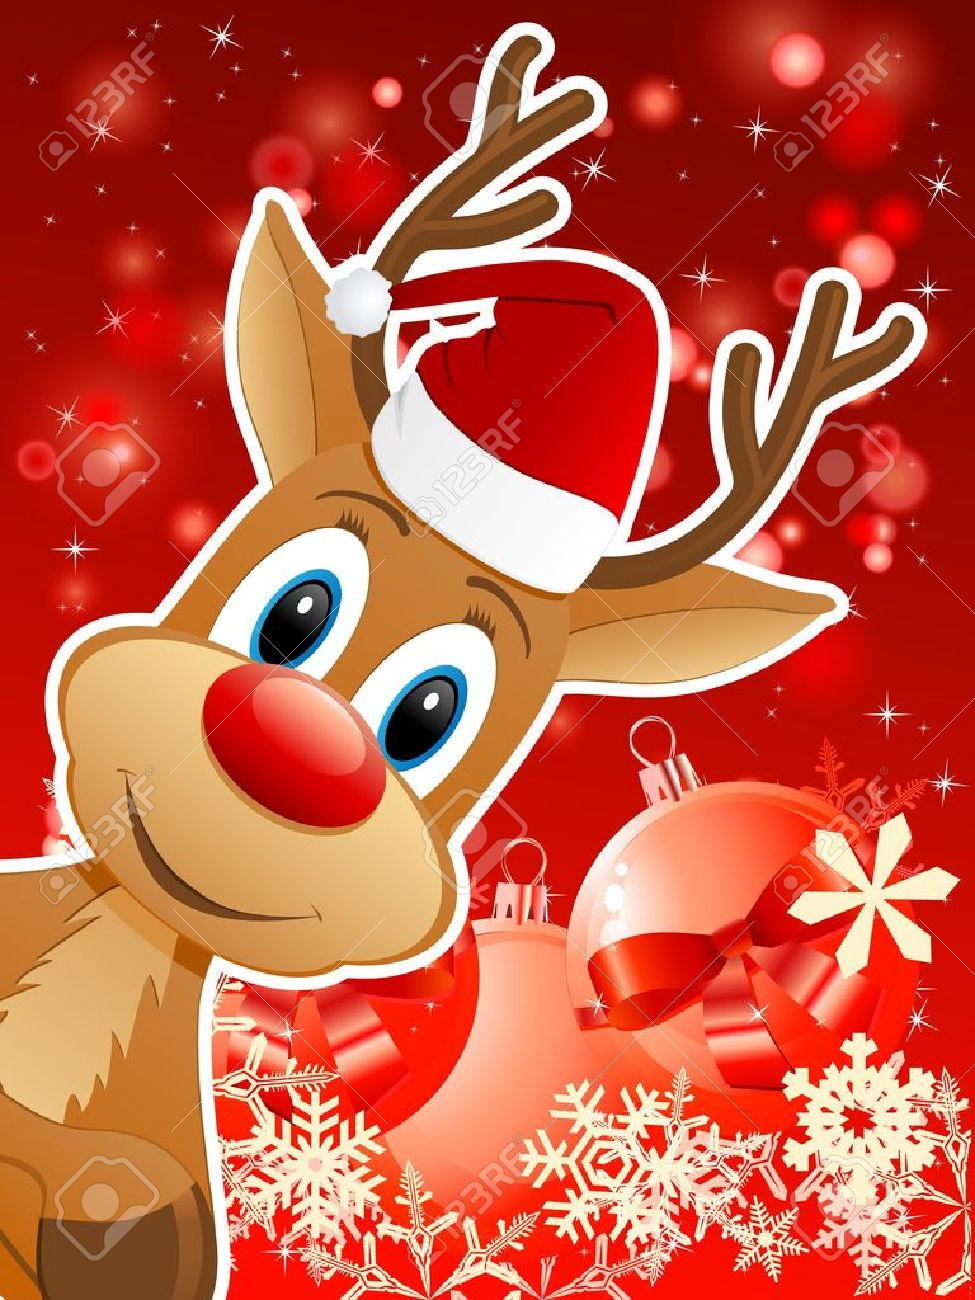 reindeer with santa hat and christmas background vector illustration stock vector 16599770 - Reindeer With Santa